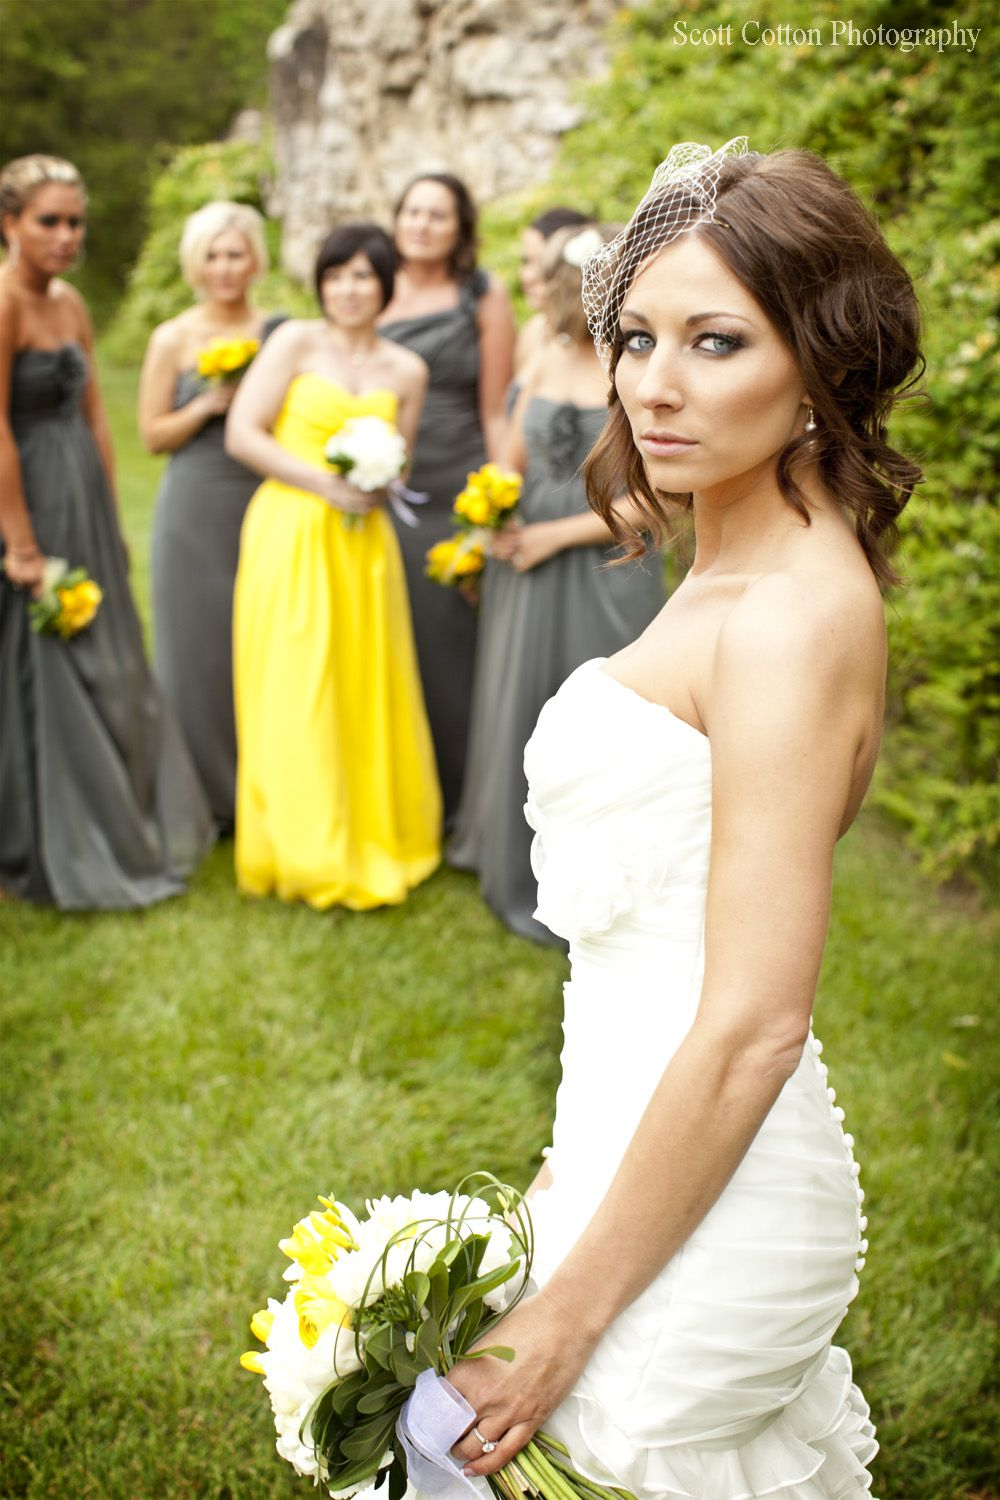 Maid Of Honor In An Accent Color For Two Brides Colors And One Wedding Party Or The